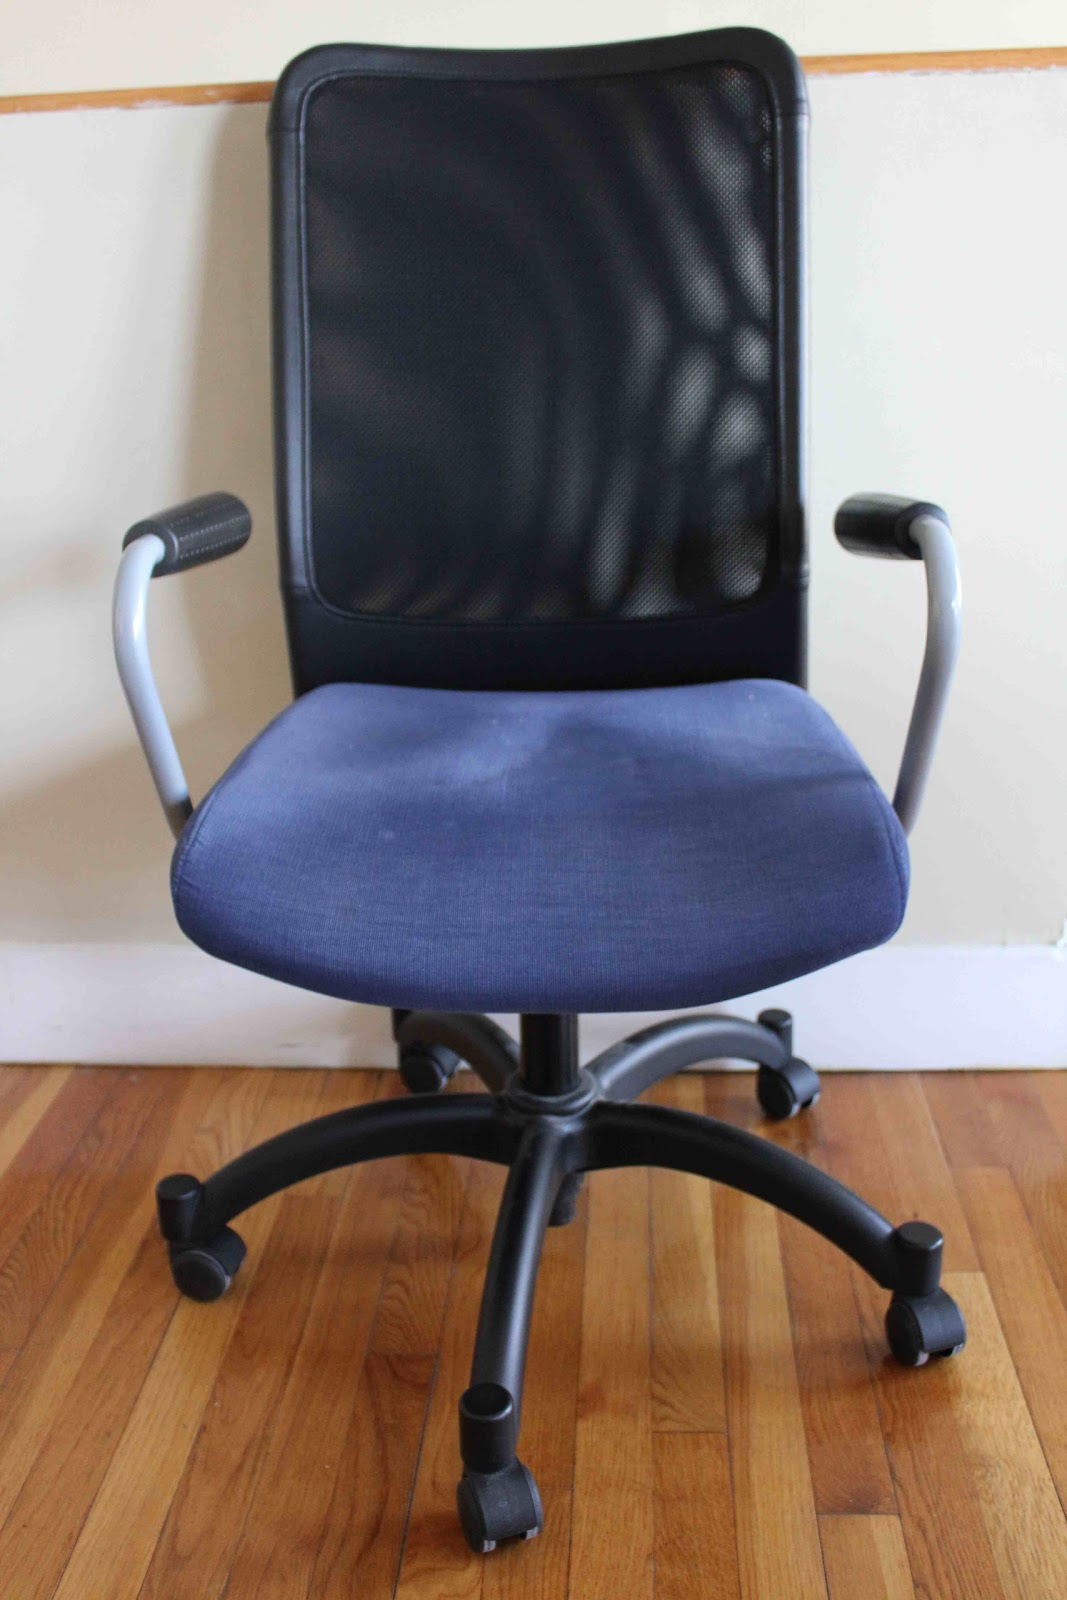 IKEA Swivel Chair With Armrests. Breathable Black Mesh Back And Navy Fabric  On Seat. Comfortable, Adjustable, In Great Condition.